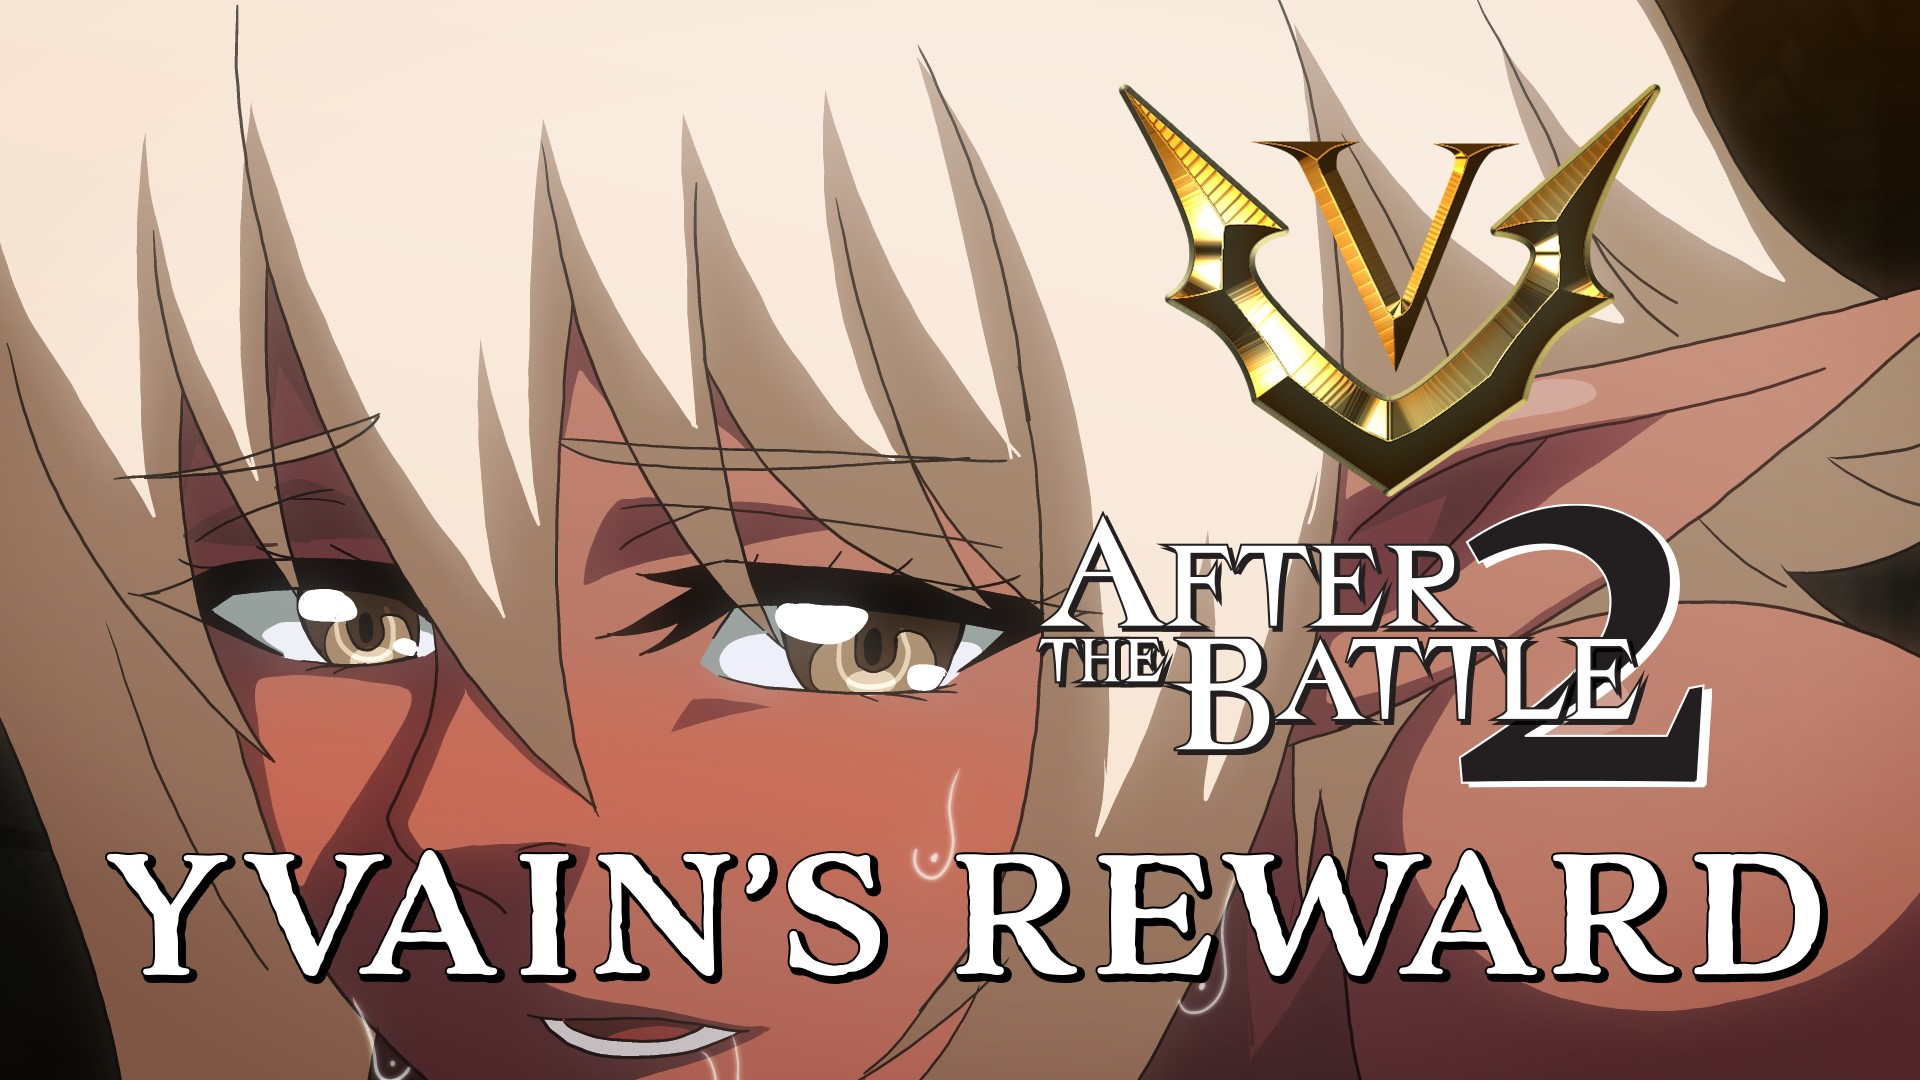 YvainsReward 3B Thumbnail - AFTER THE BATTLE 2 PT2: YVAIN'S REWARD